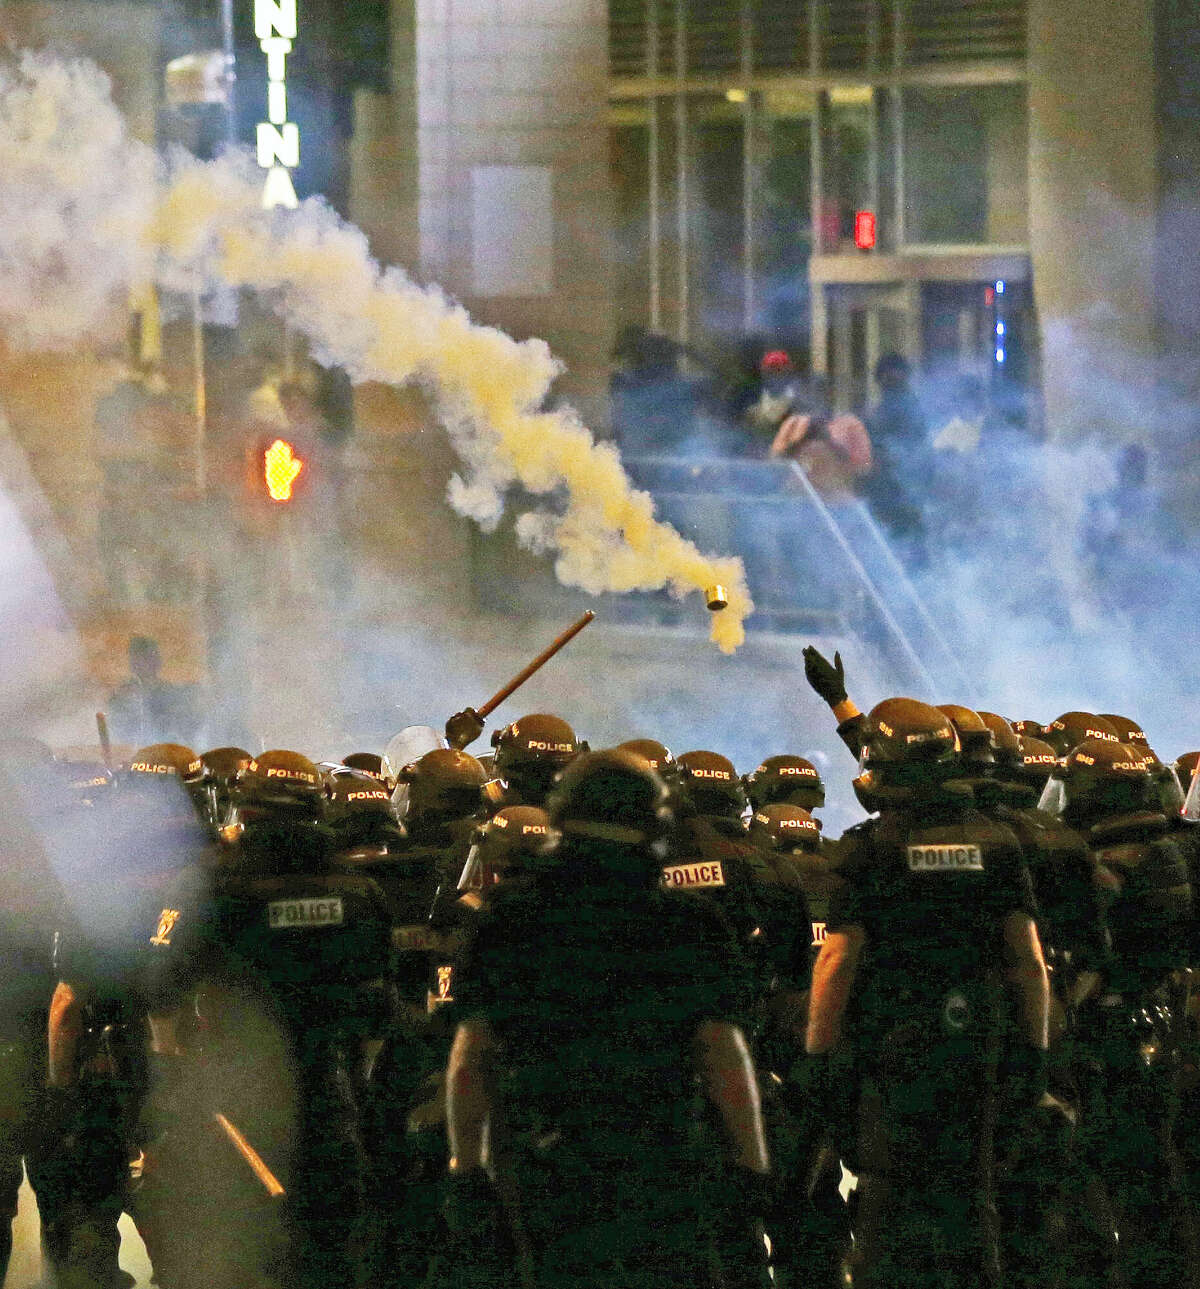 Police fire tear gas as protestors converge downtown following Tuesday's police shooting of Keith Lamont Scott in Charlotte, N.C. on Sept. 21, 2016. Protesters have rushed police in riot gear at a downtown Charlotte hotel and officers have fired tear gas to disperse the crowd. At least one person was injured in the confrontation, though it wasn't immediately clear how. Firefighters rushed in to pull the man to a waiting ambulance.